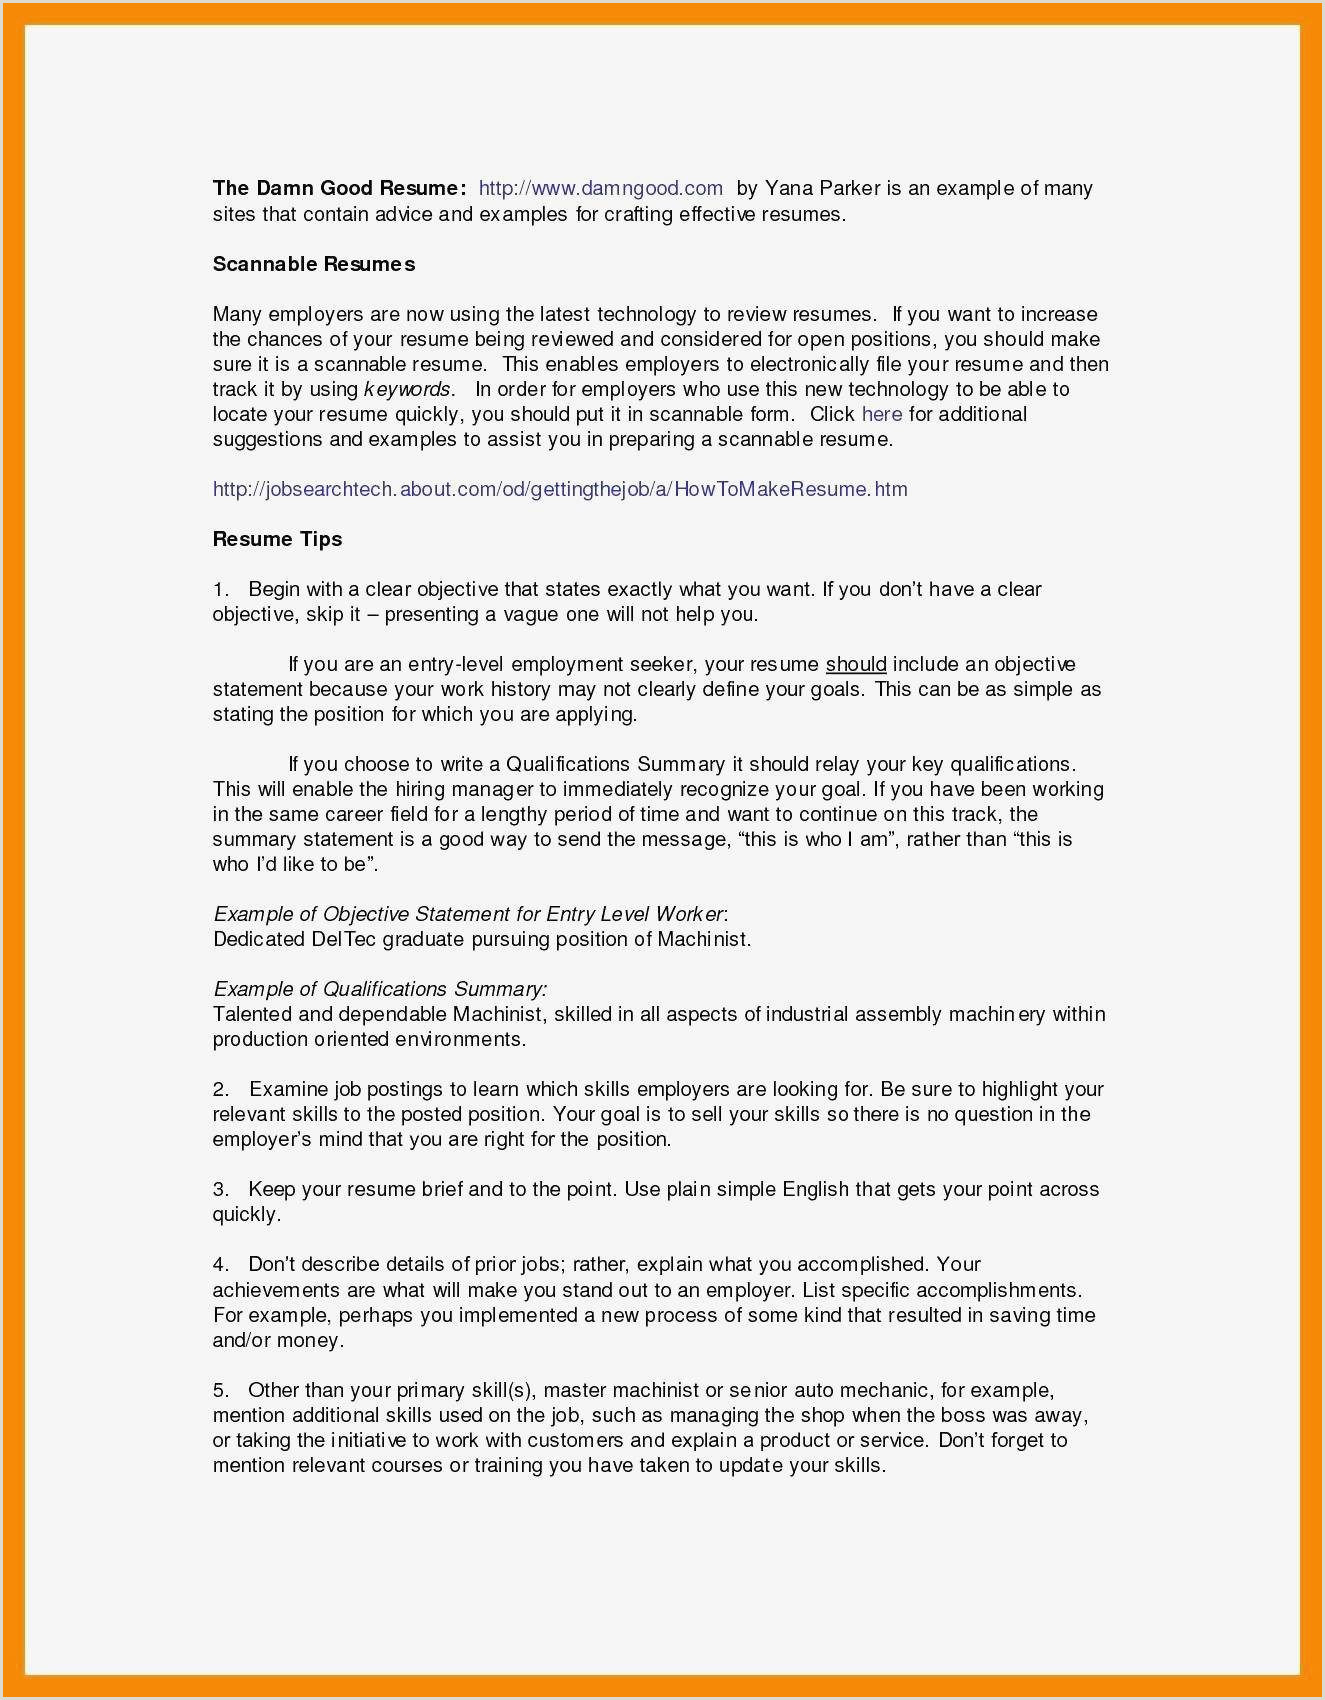 Resume format for Corporate Job Cv Libre Fice Nouveau 10 Open Fice Resume Template Free